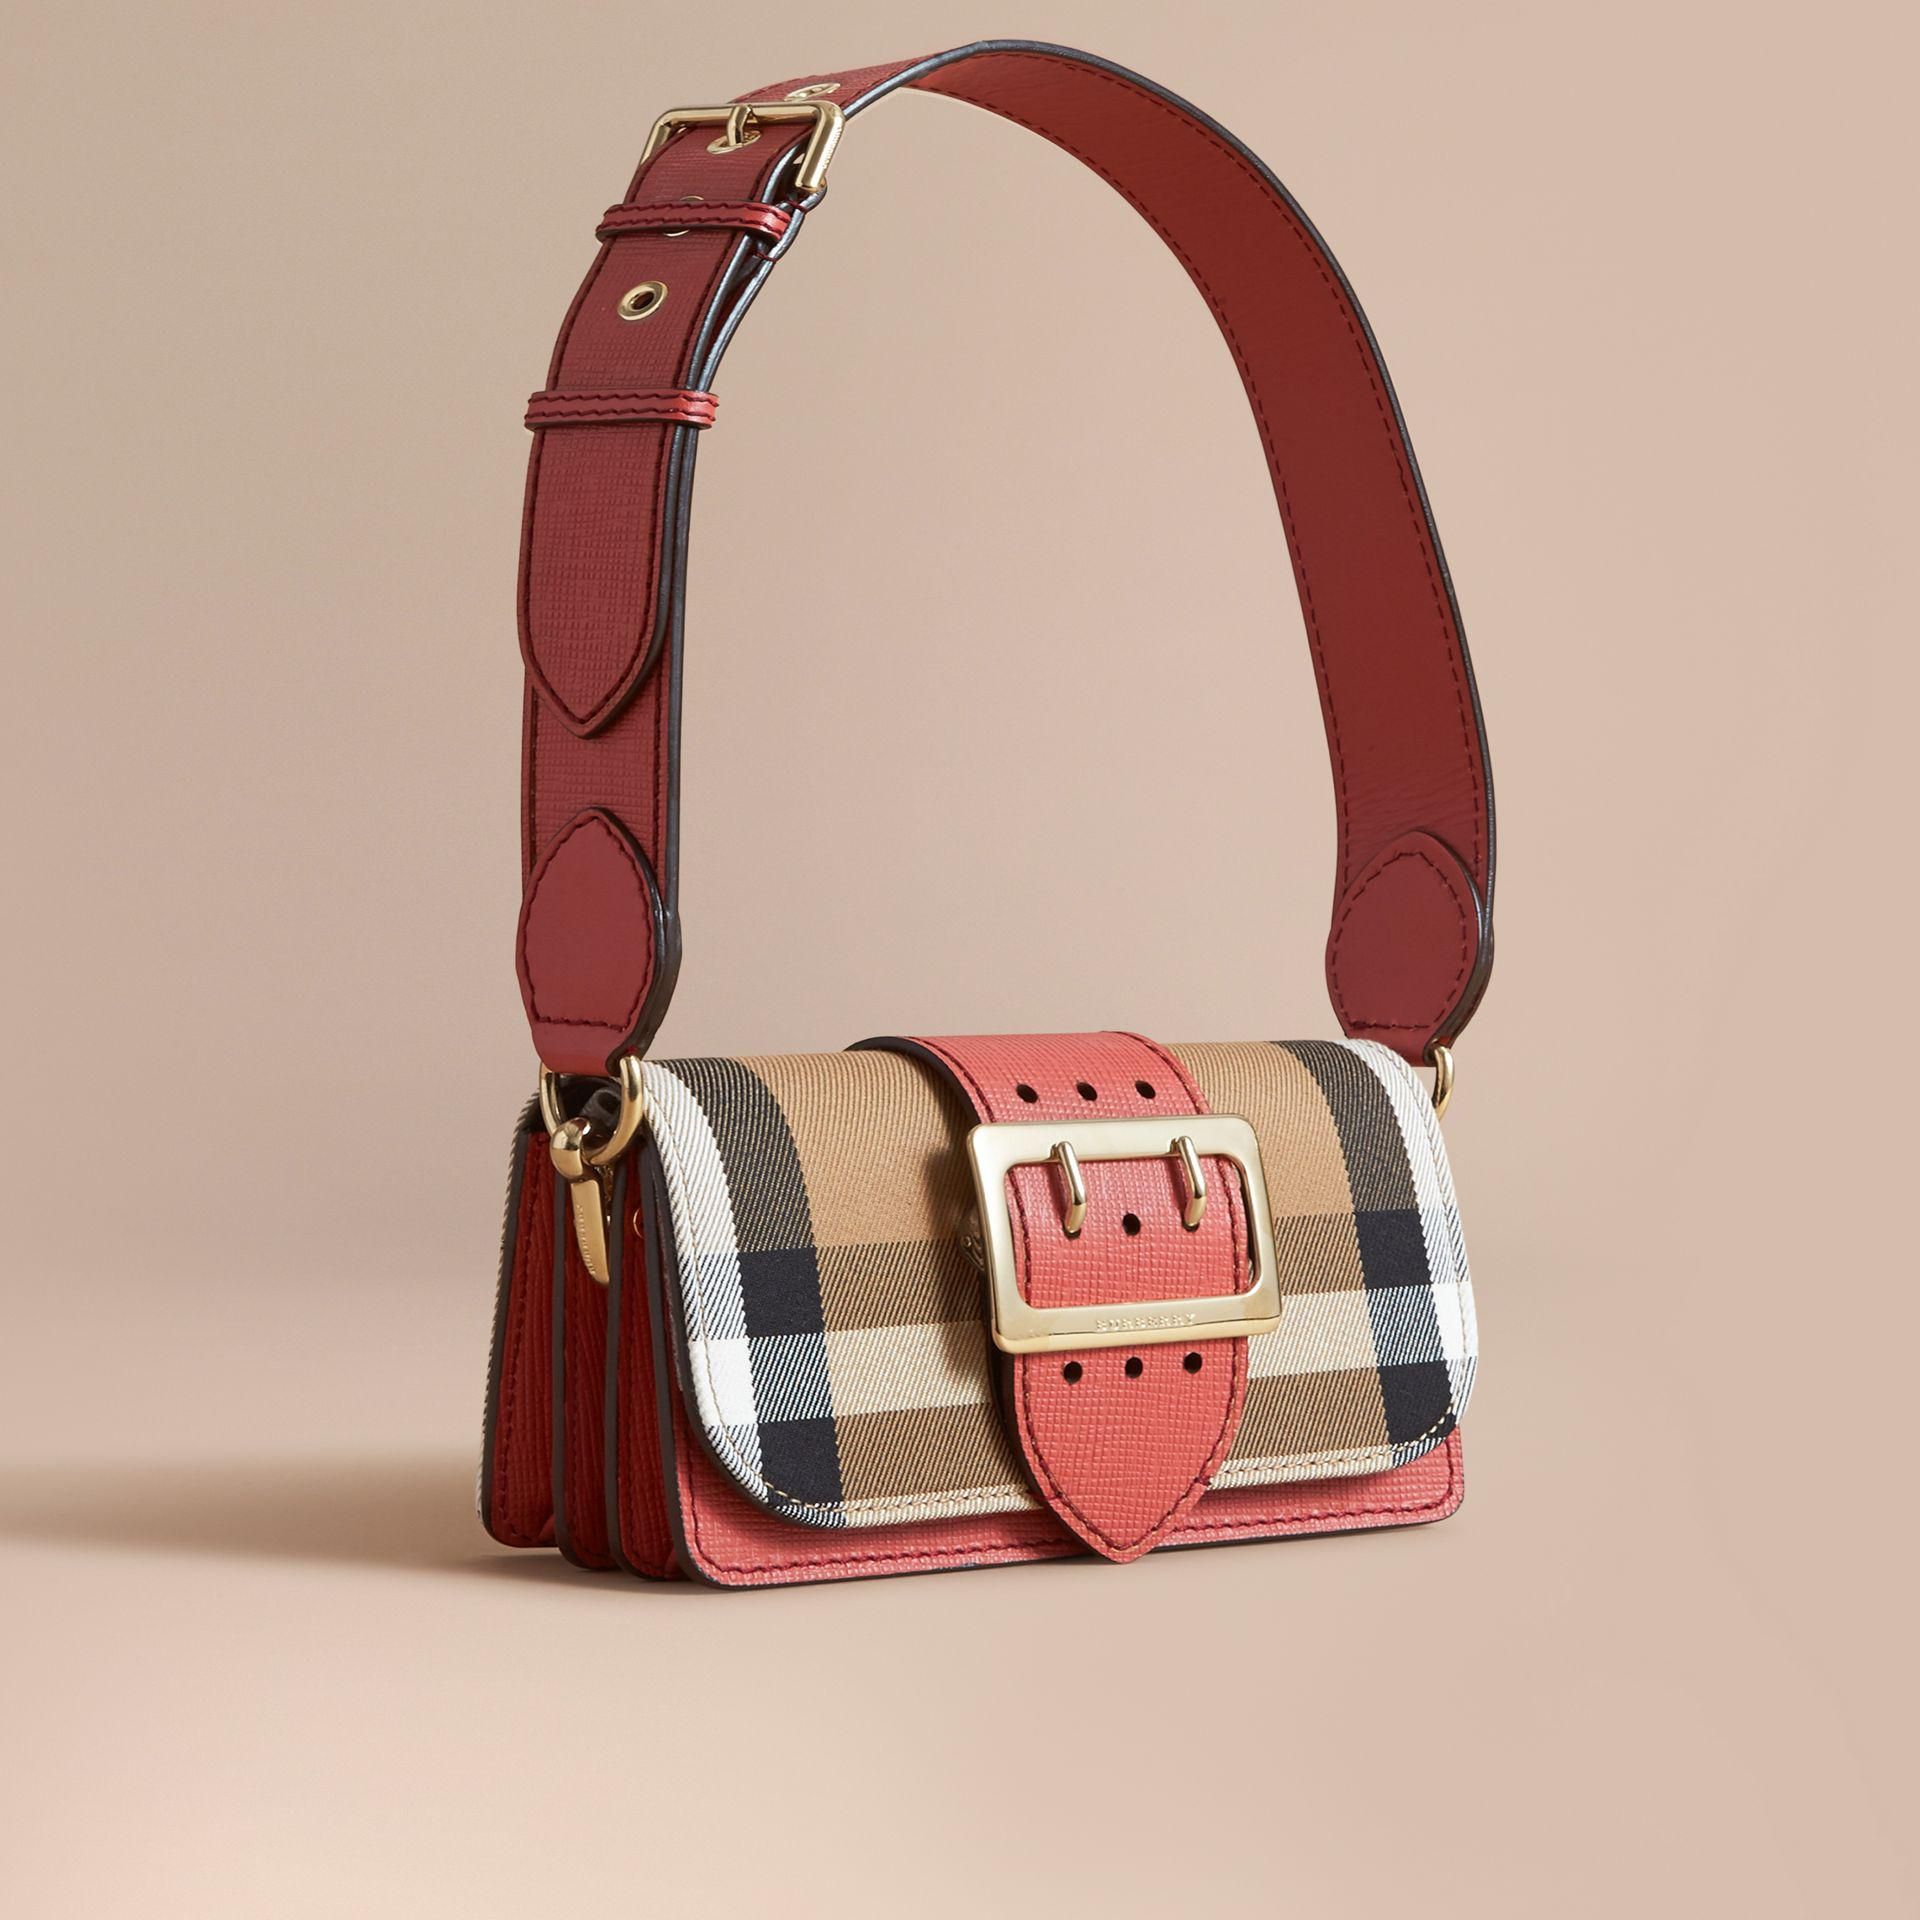 c9342d8da12d Lyst - Burberry The Small Buckle Bag In House Check And Leather ...